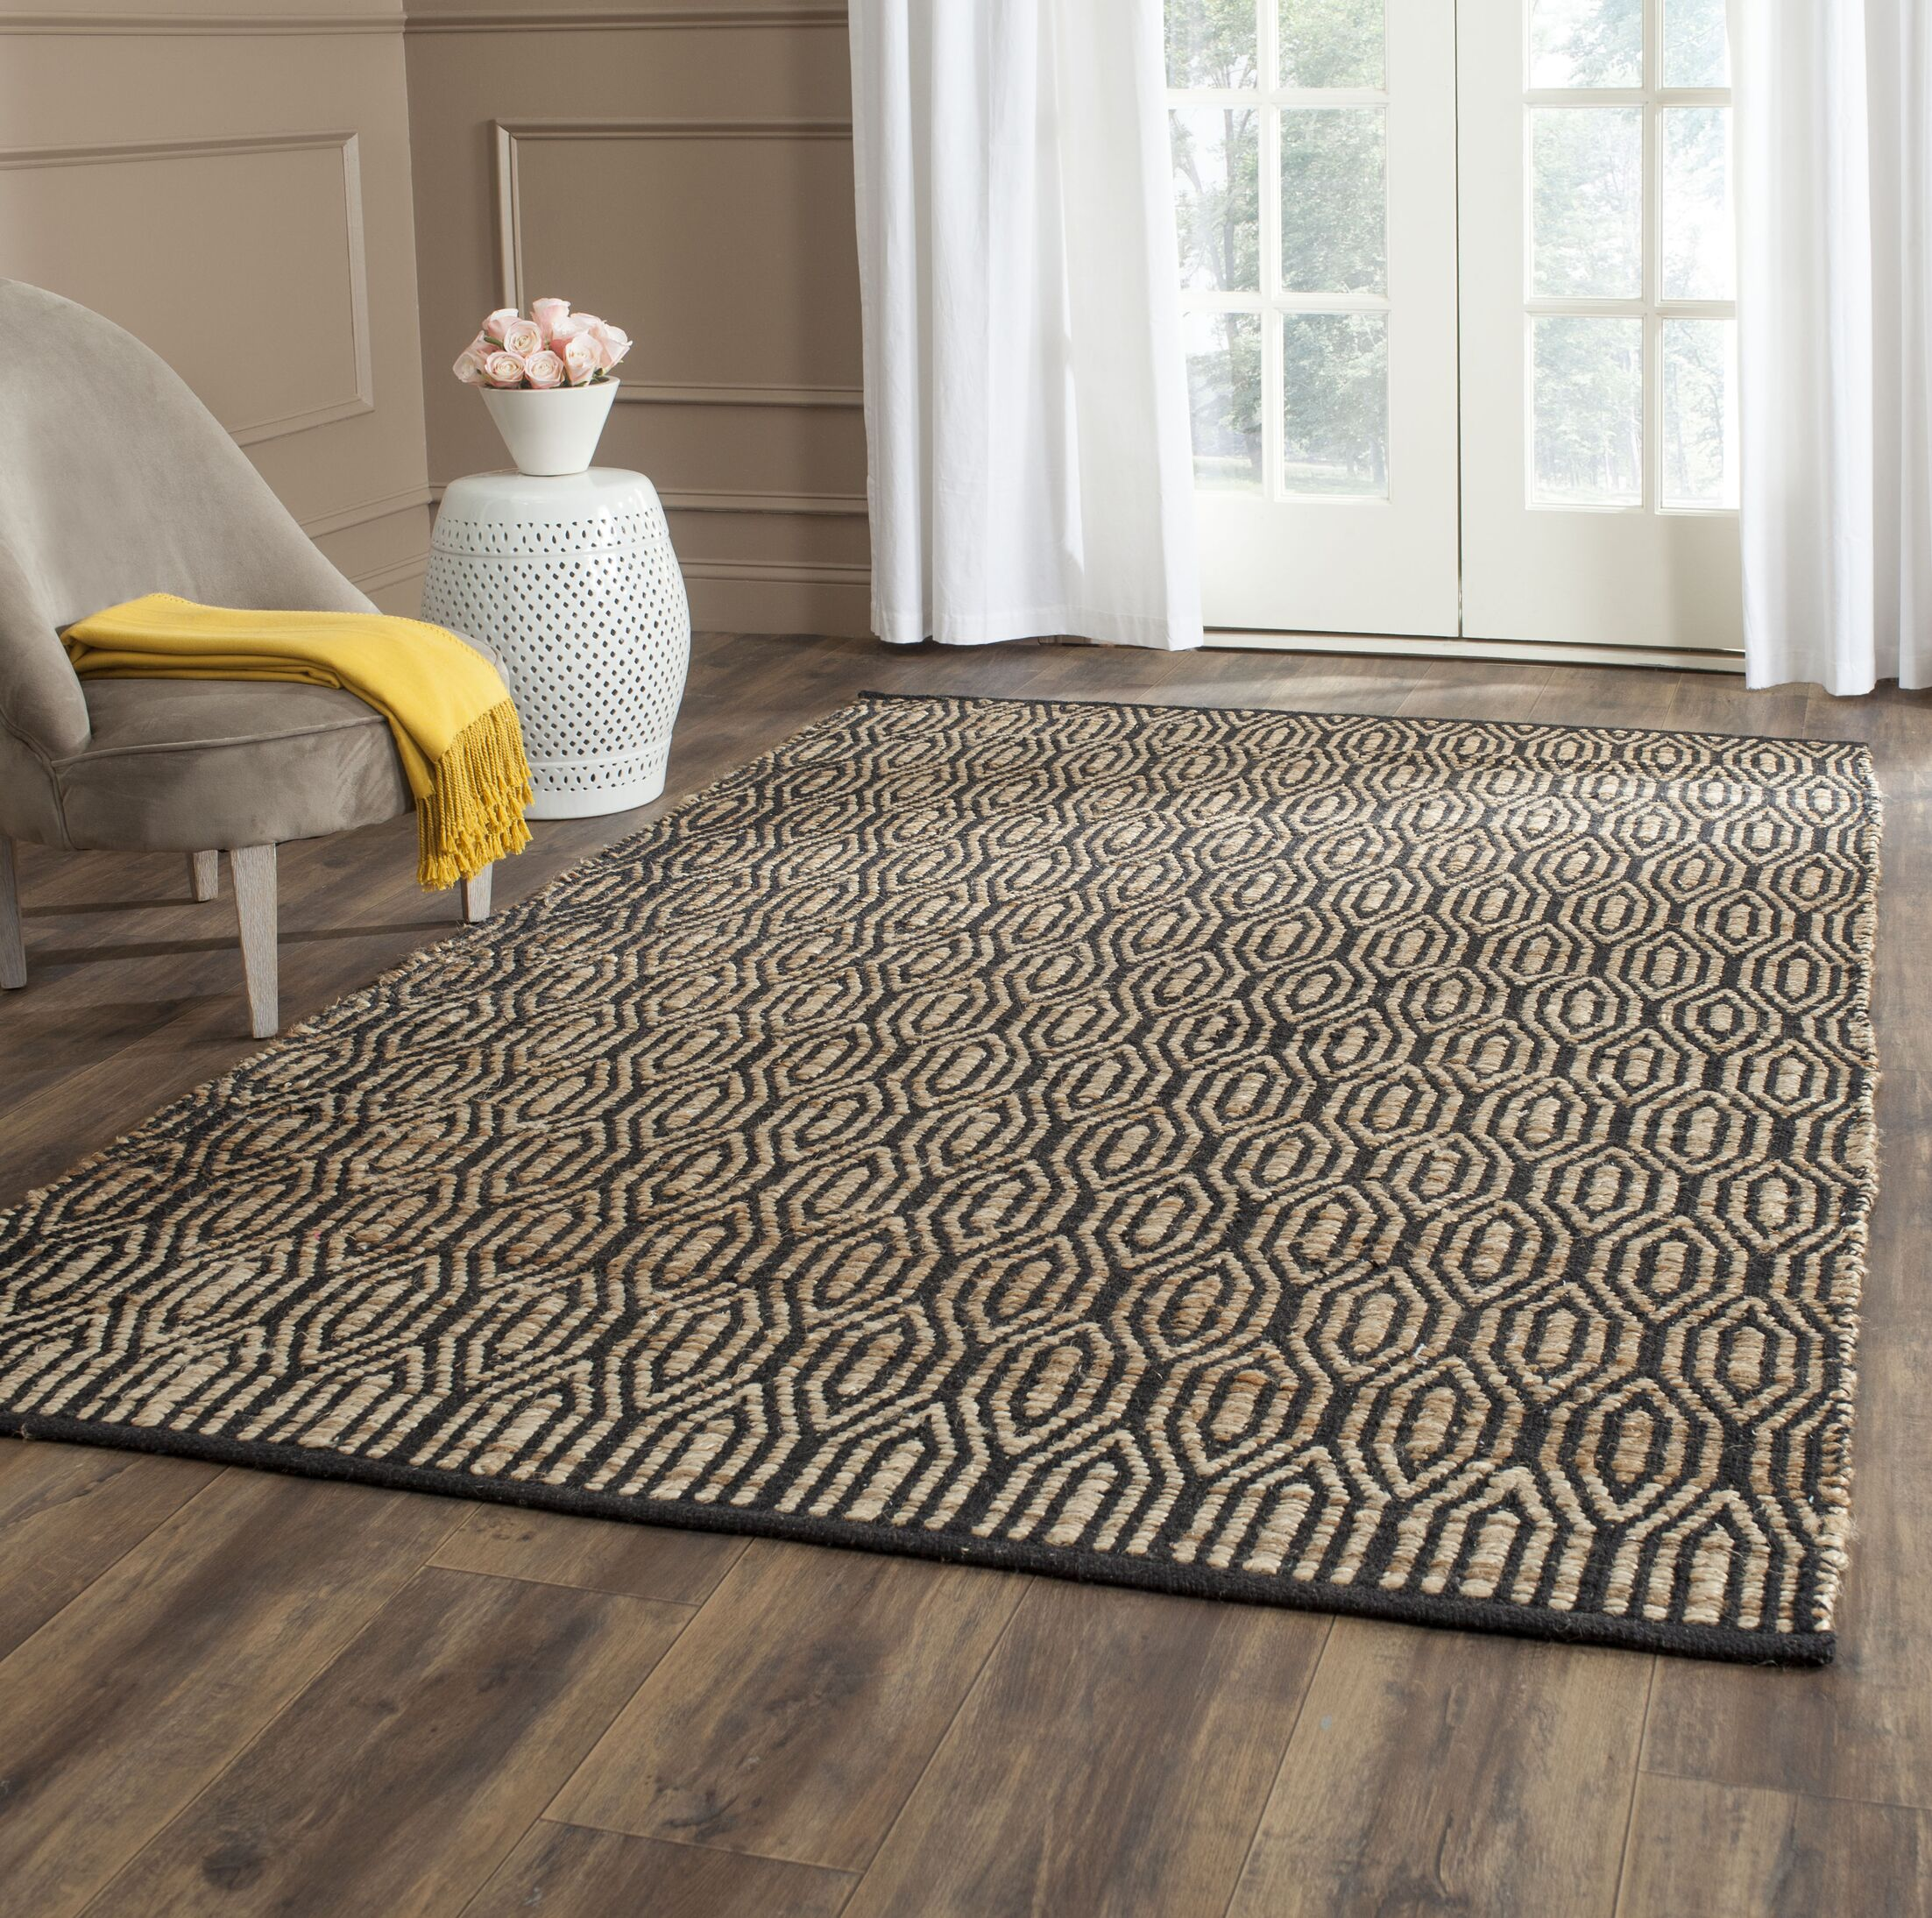 Astor Place Hand-Woven Black/Natural Area Rug Rug Size: Rectangle 9' x 12'